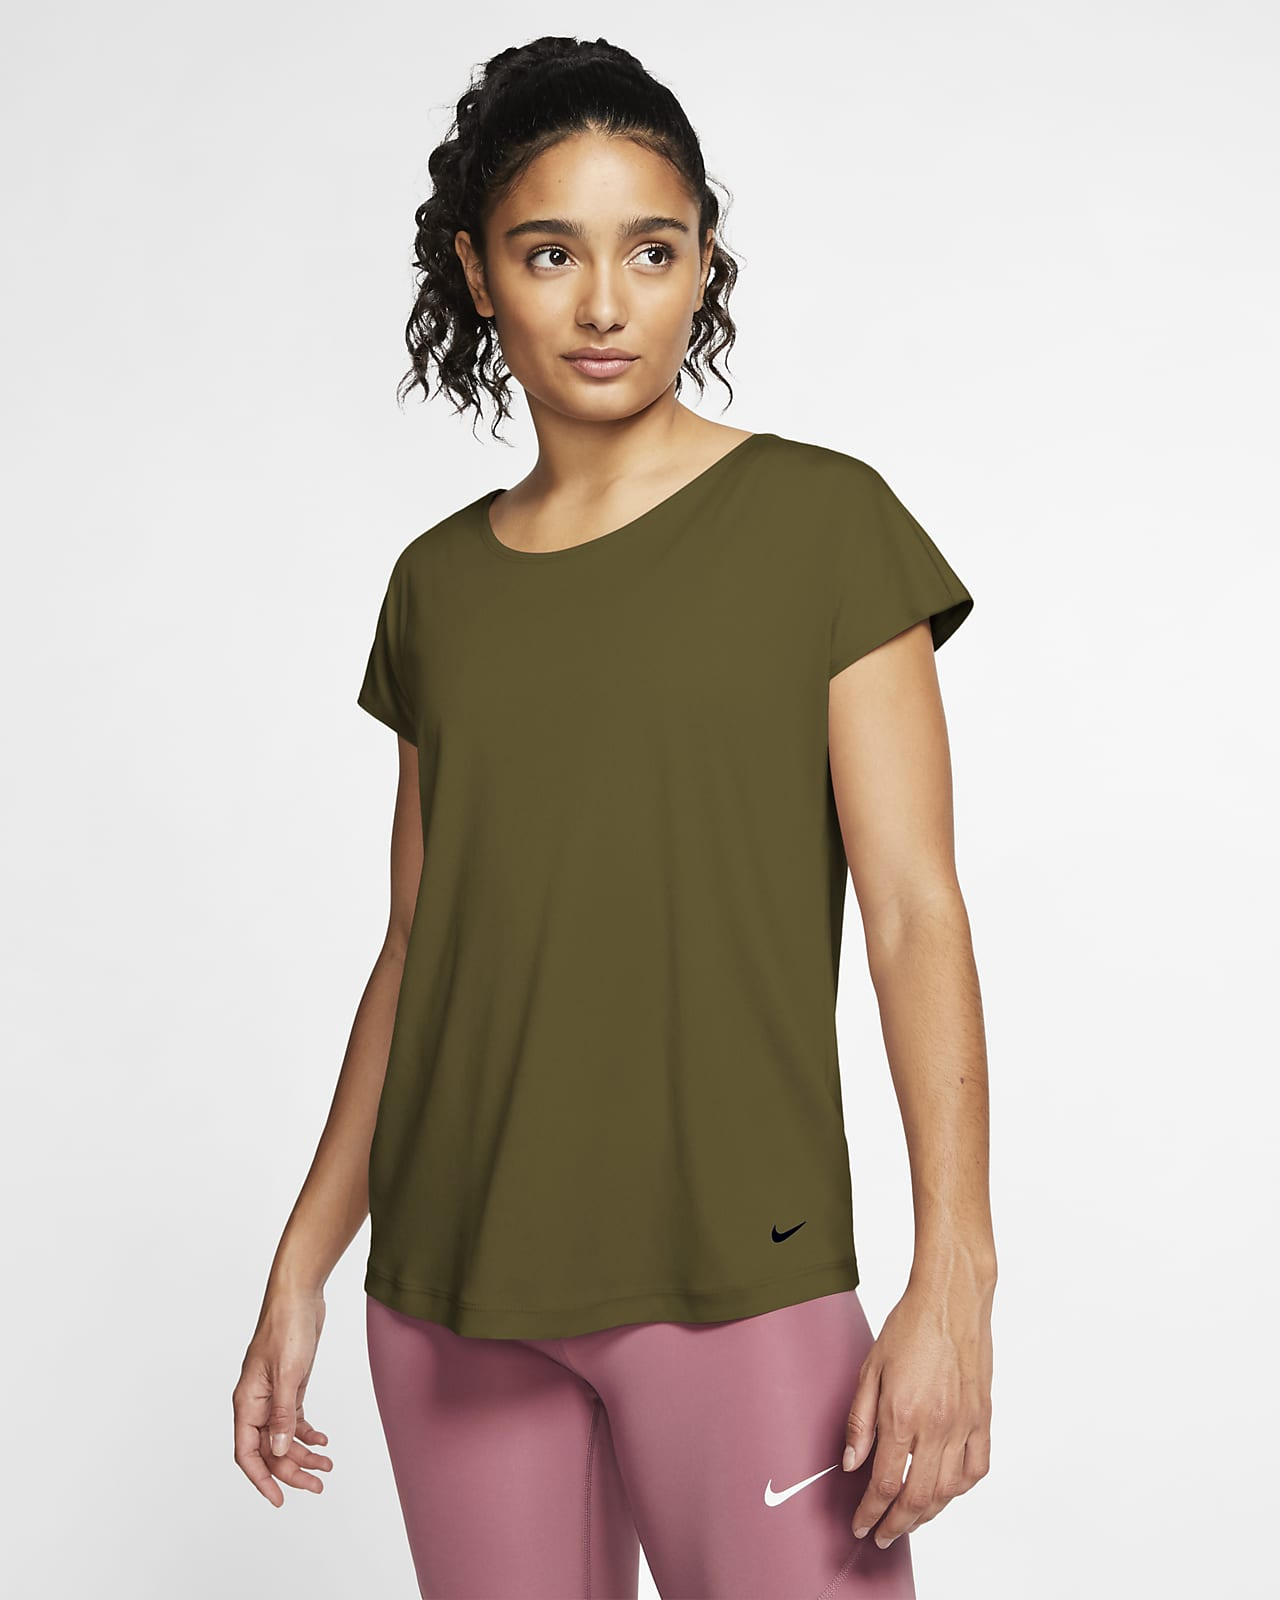 Nike Pro Dri-FIT Women's Short-Sleeve Top